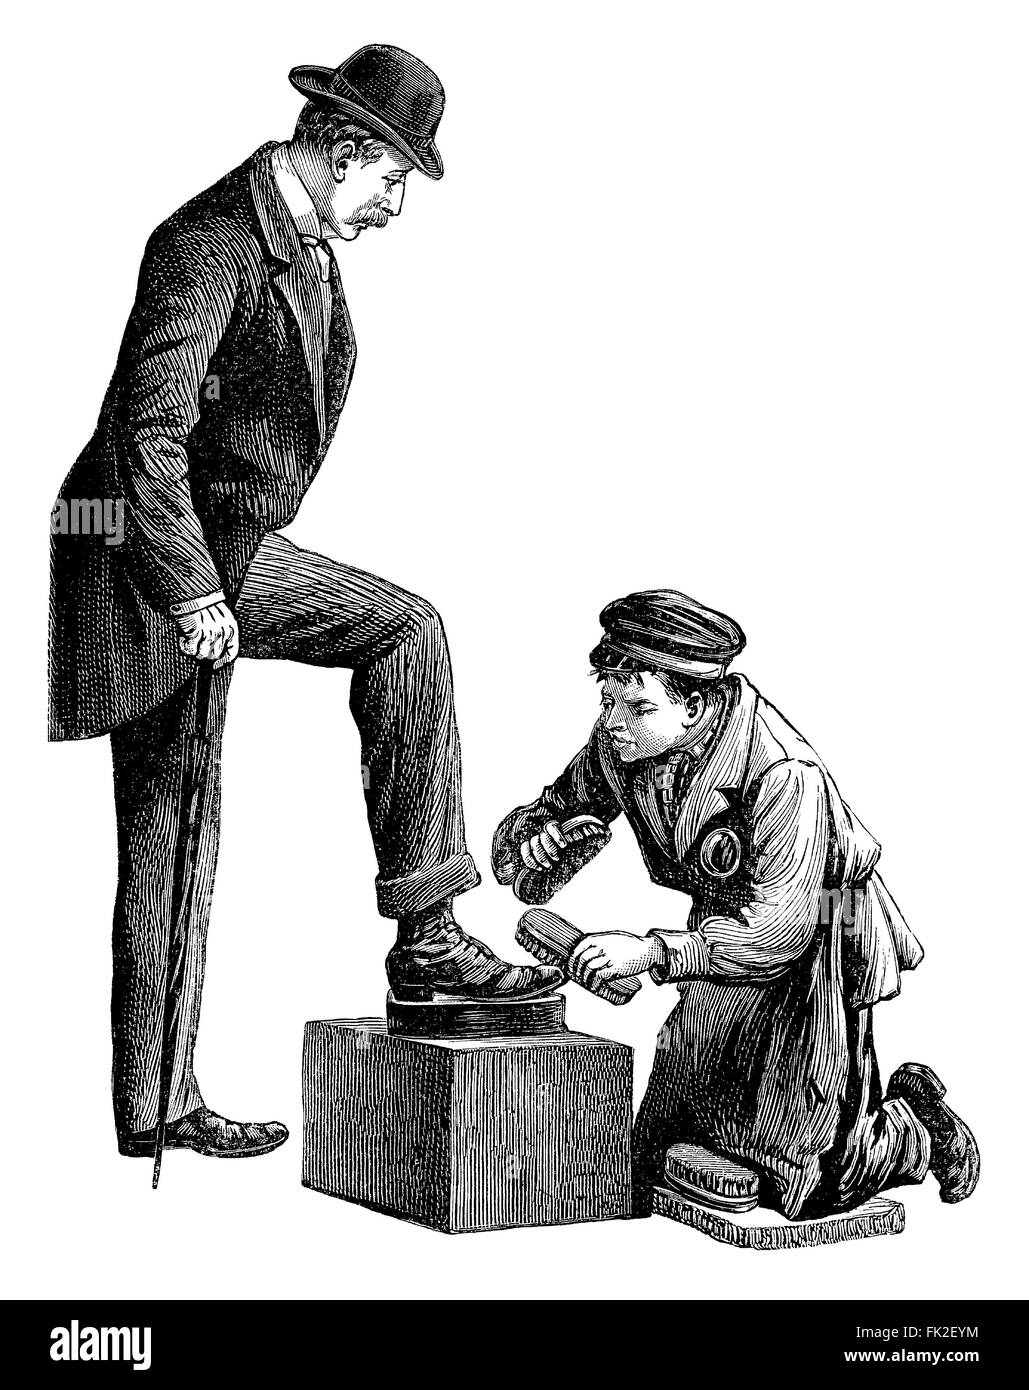 black and white engraving of a shoeshine boy polishing the shoes of a stock photo 97785960 alamy. Black Bedroom Furniture Sets. Home Design Ideas